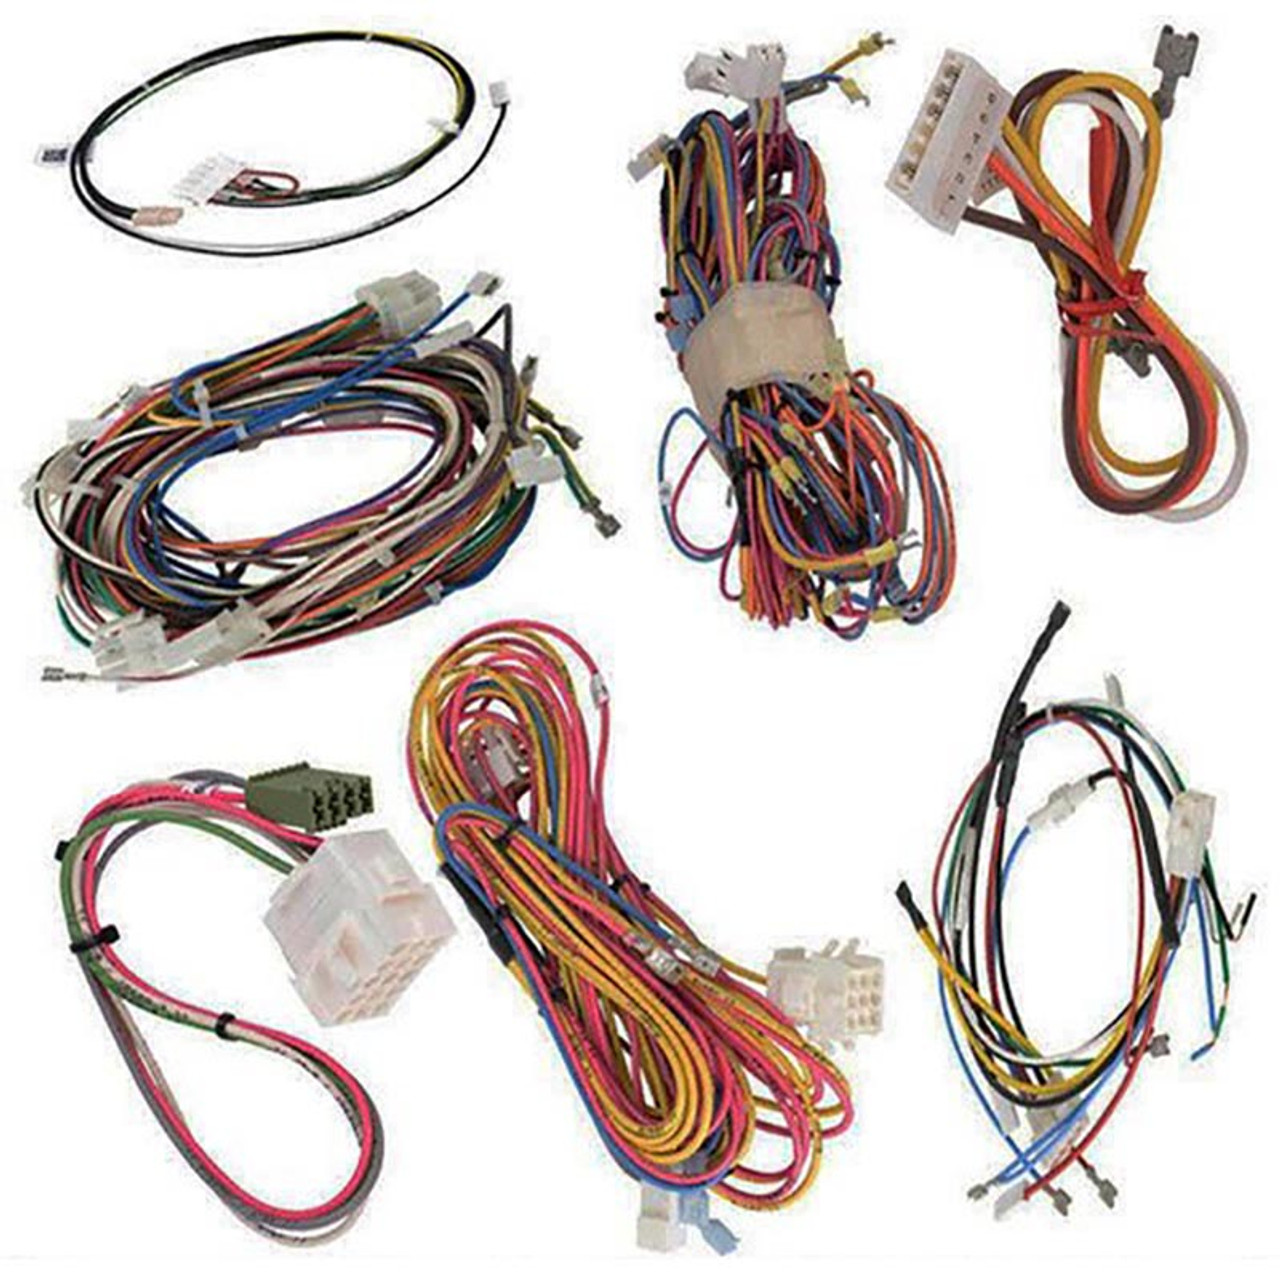 3 Phase Compressor Wiring Harness - Wiring Diagrams Dock